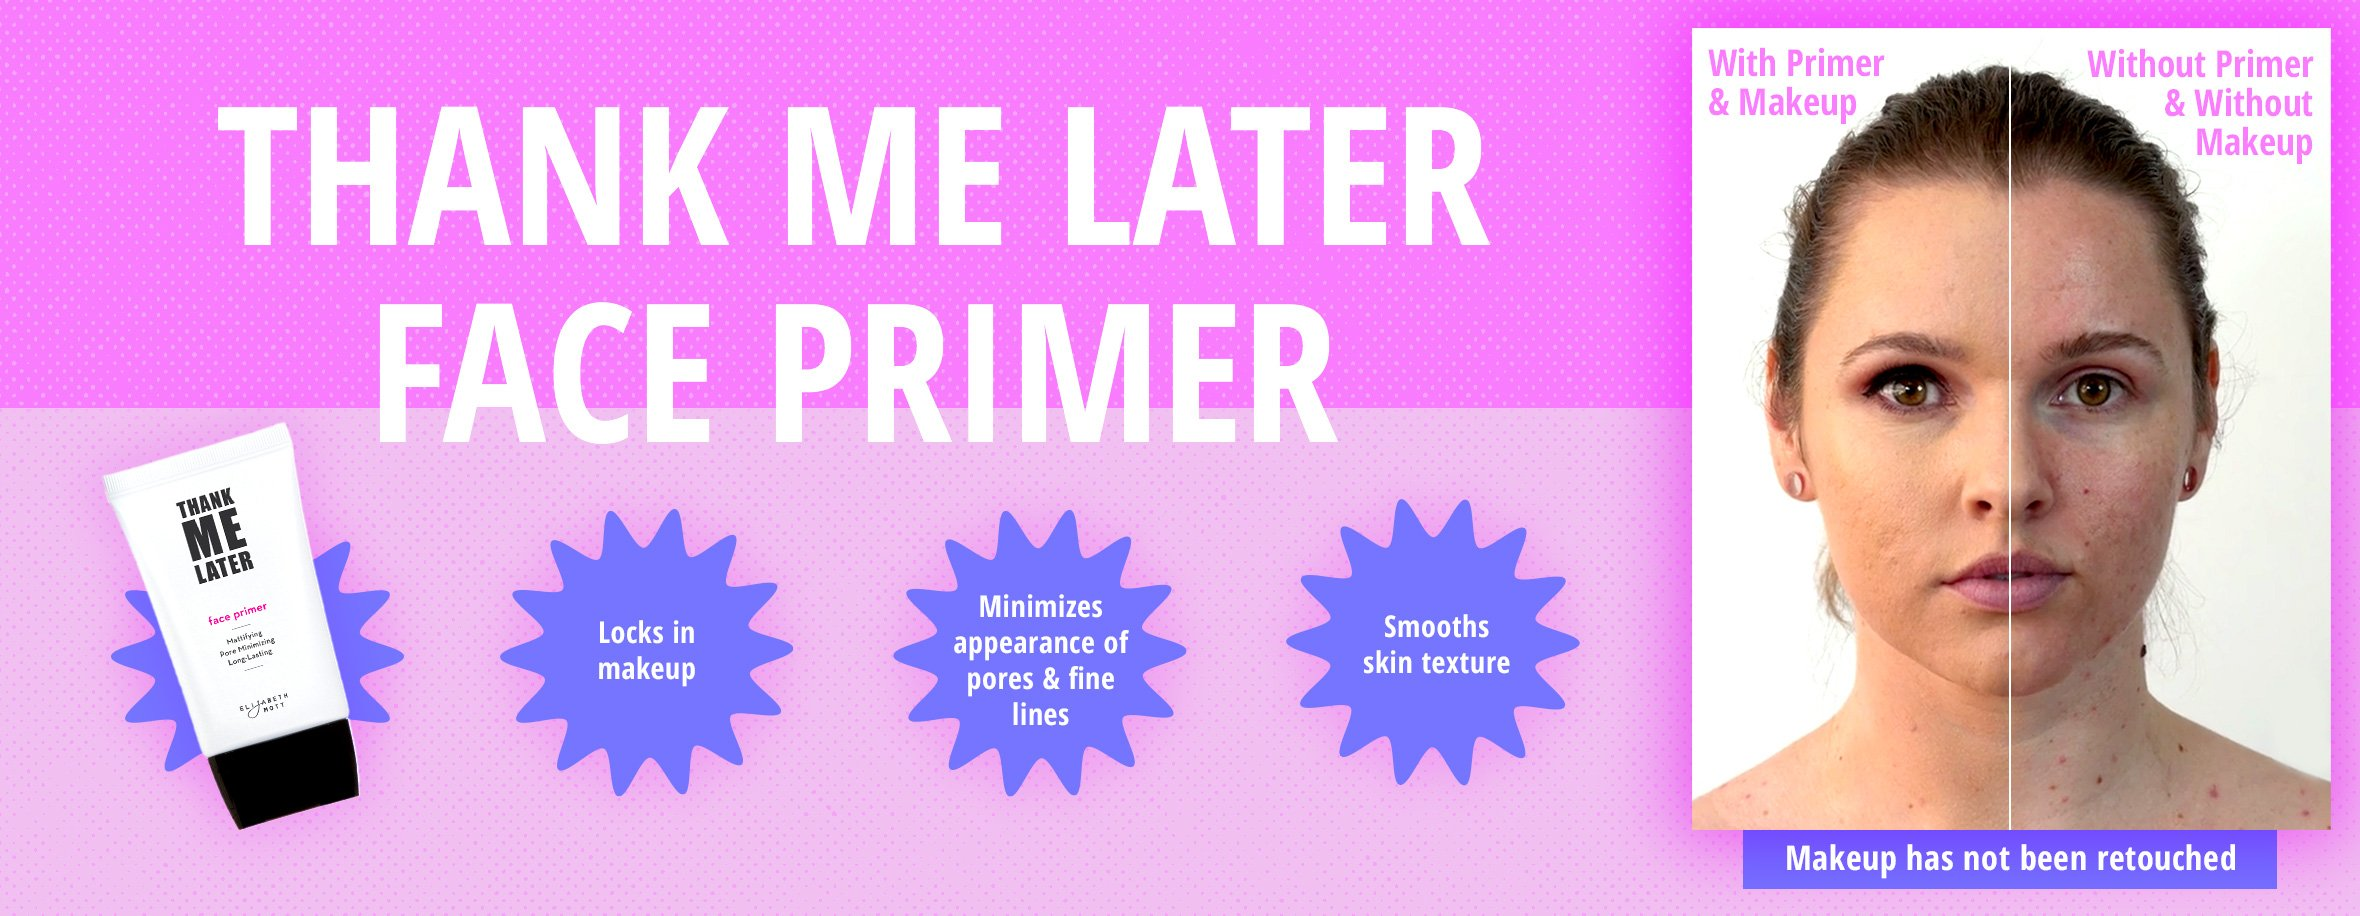 Thank Me Later Primer. Paraben-free and Cruelty Free. … Face Primer (30G) by Elizabeth Mott (Image #5)